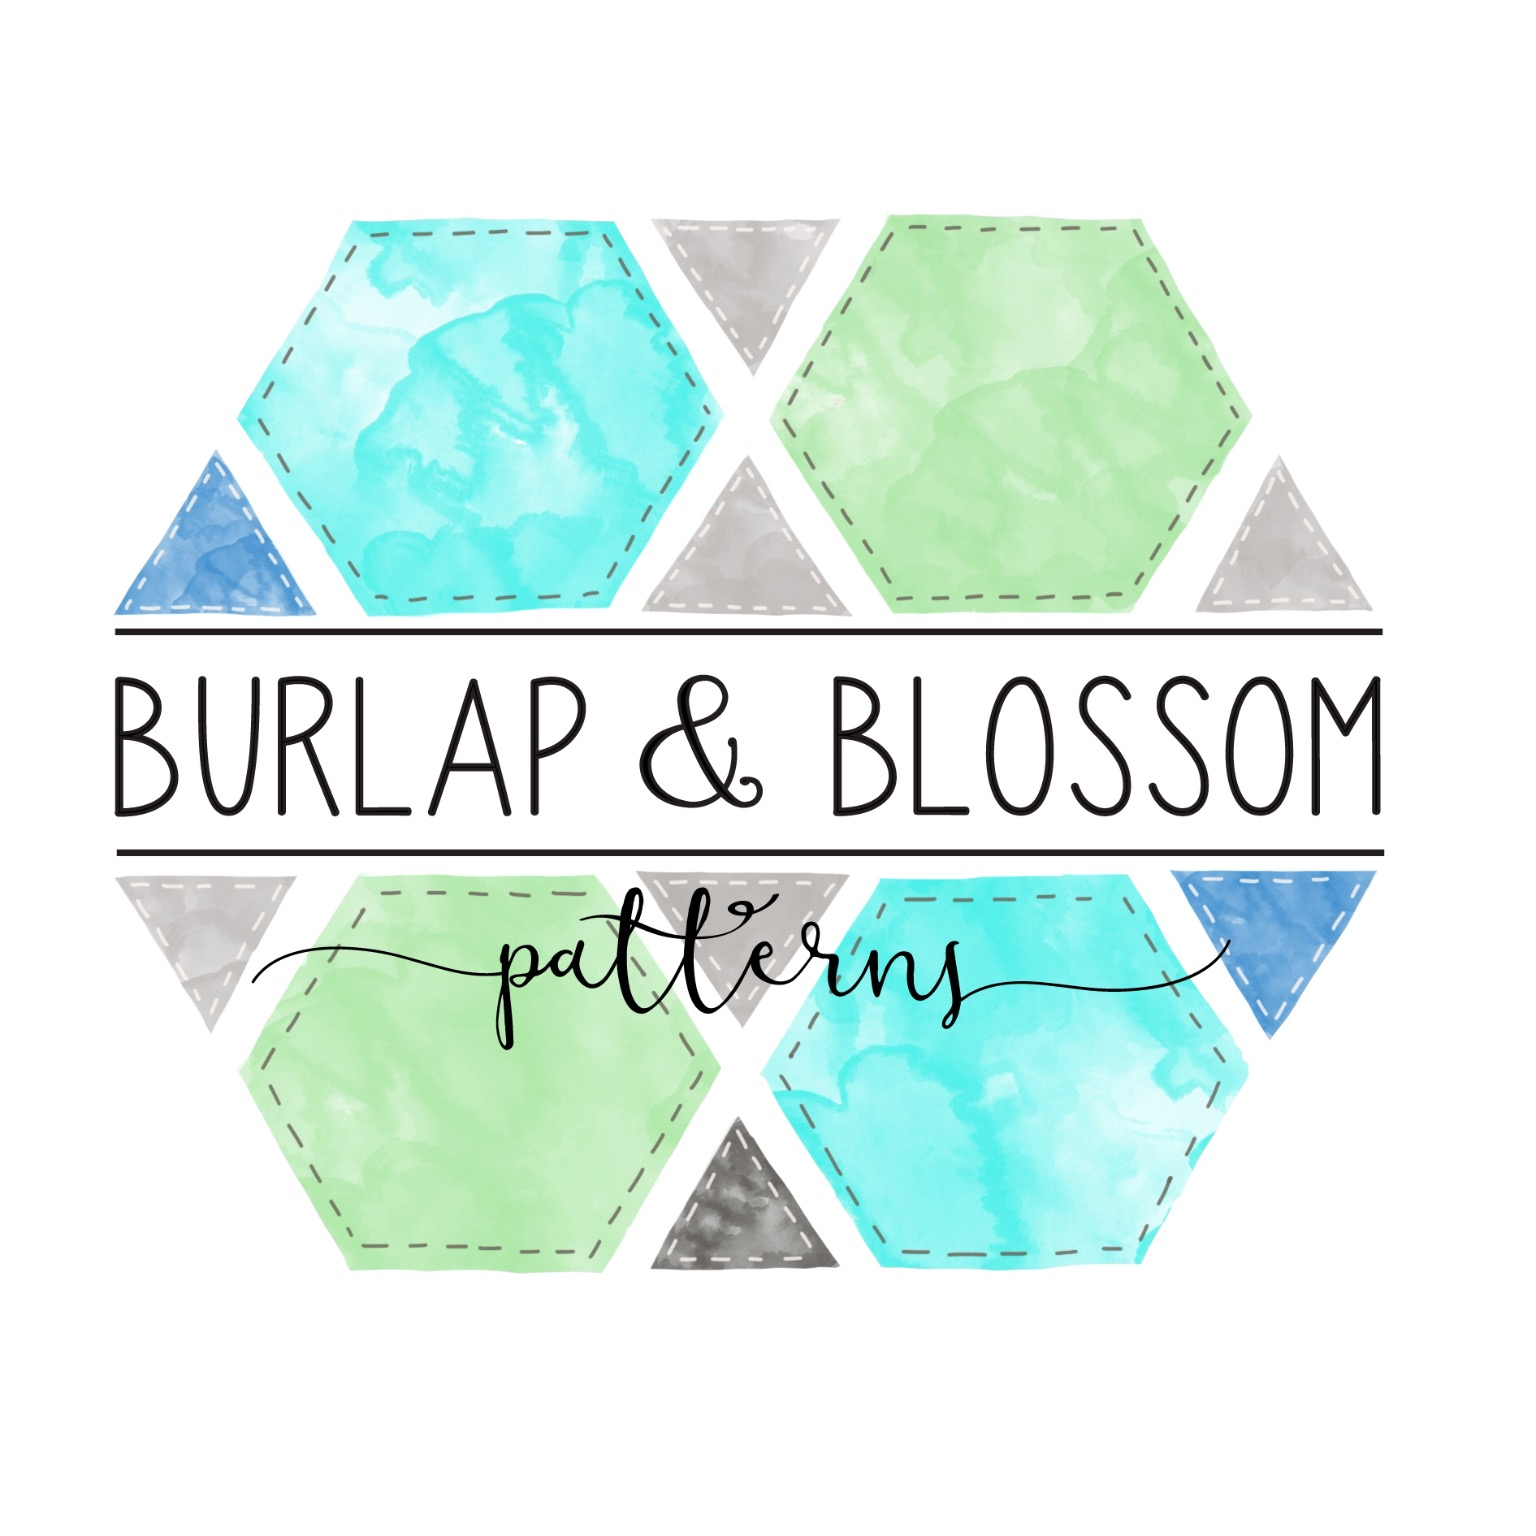 Burlap and Blossom Patterns